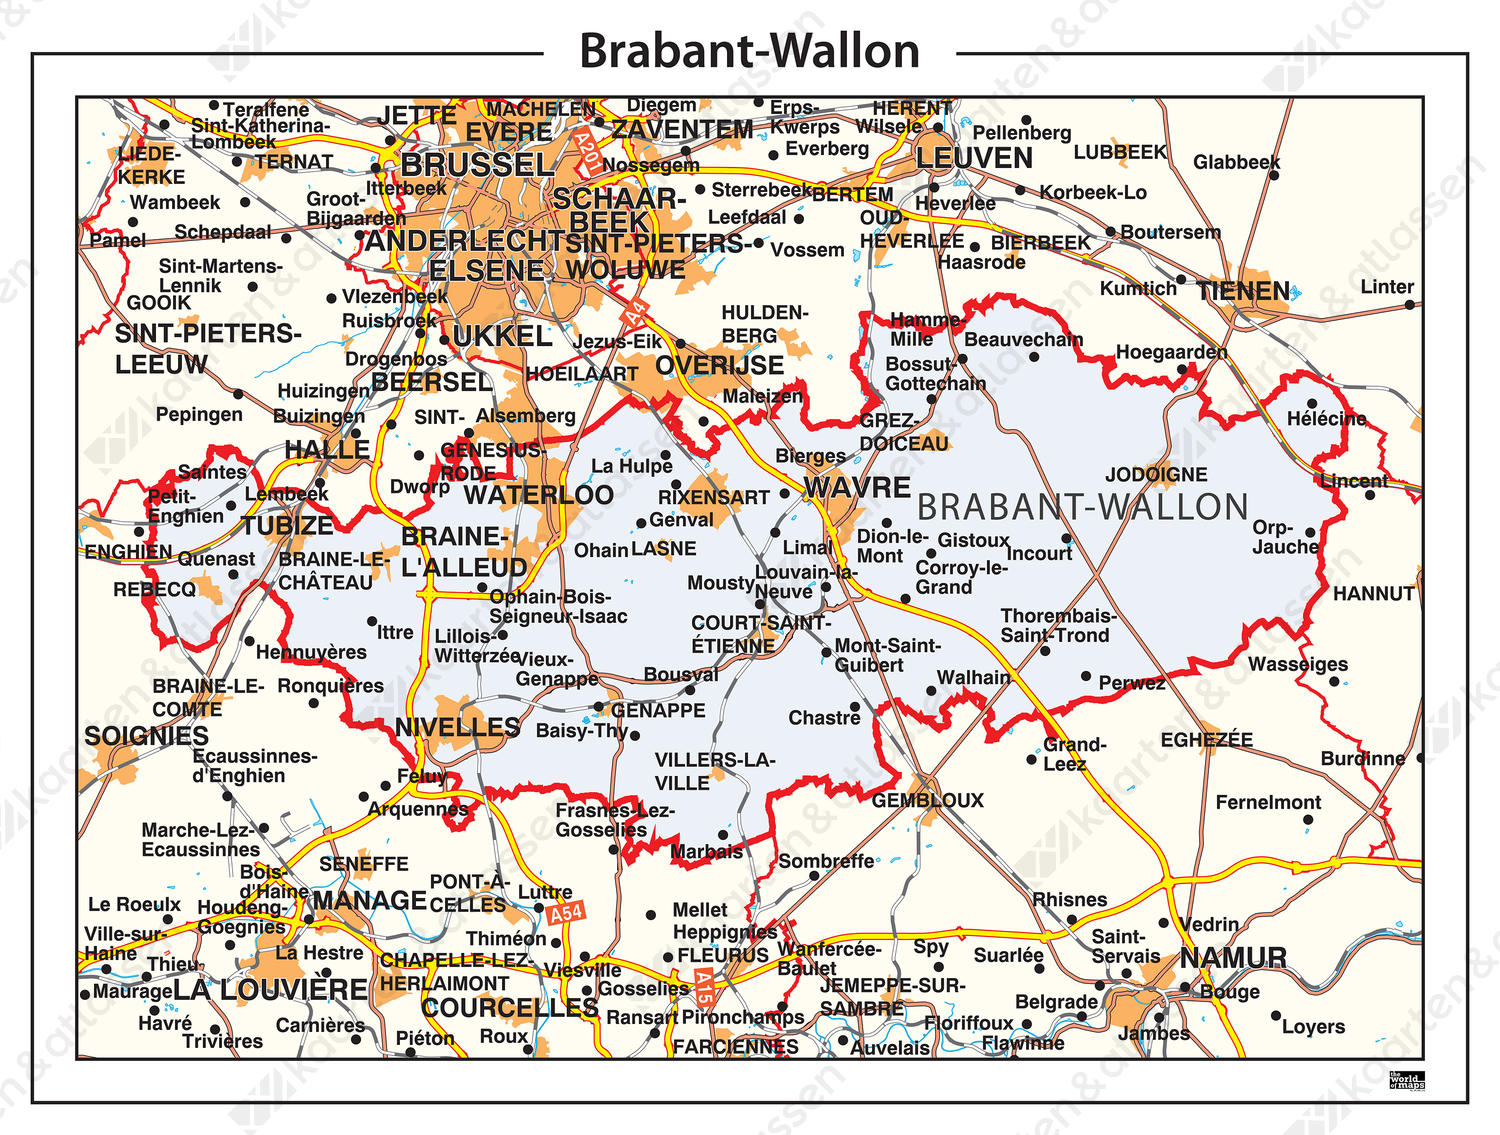 Digitale Provinciekaart Brabant-Wallon